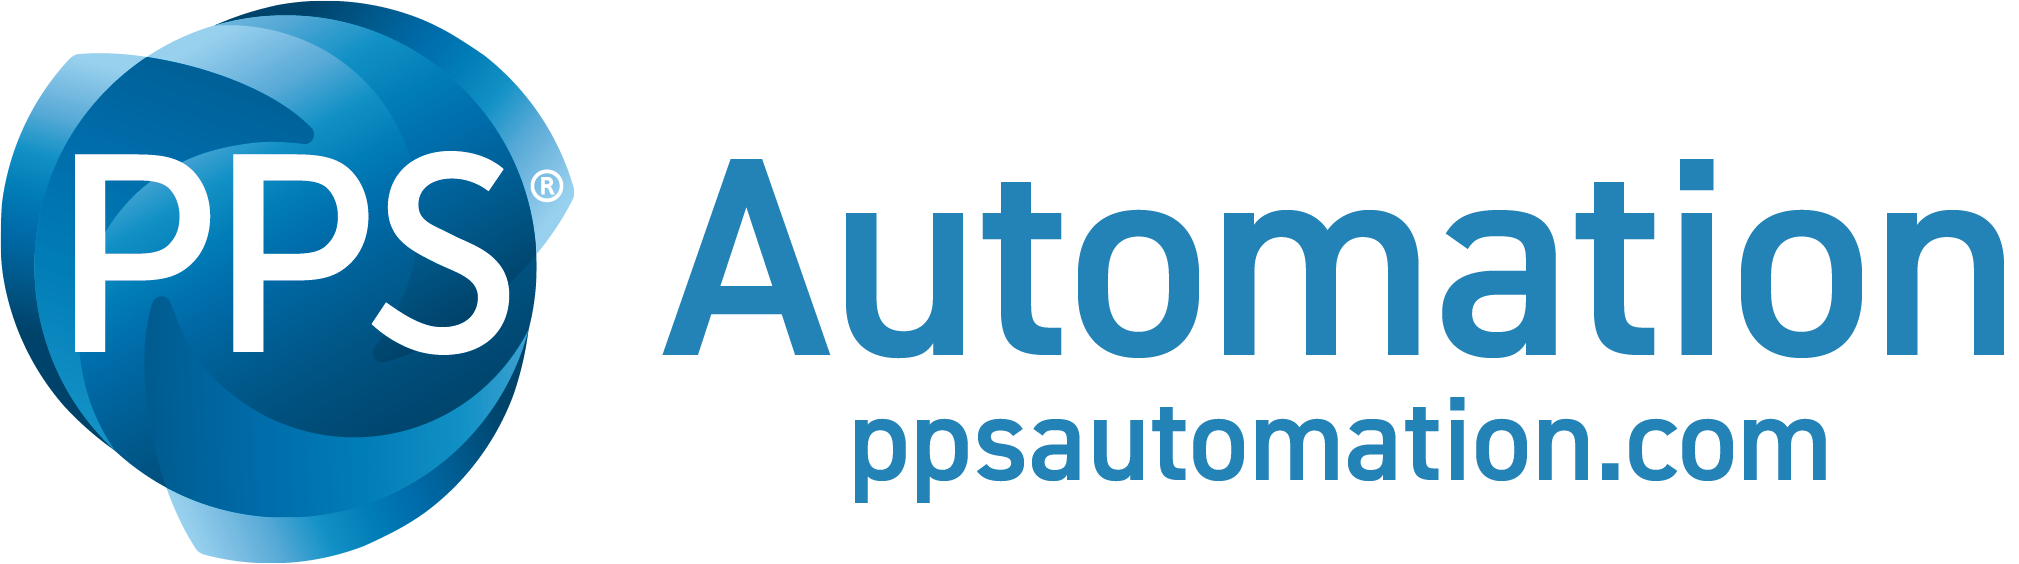 PPS Automation